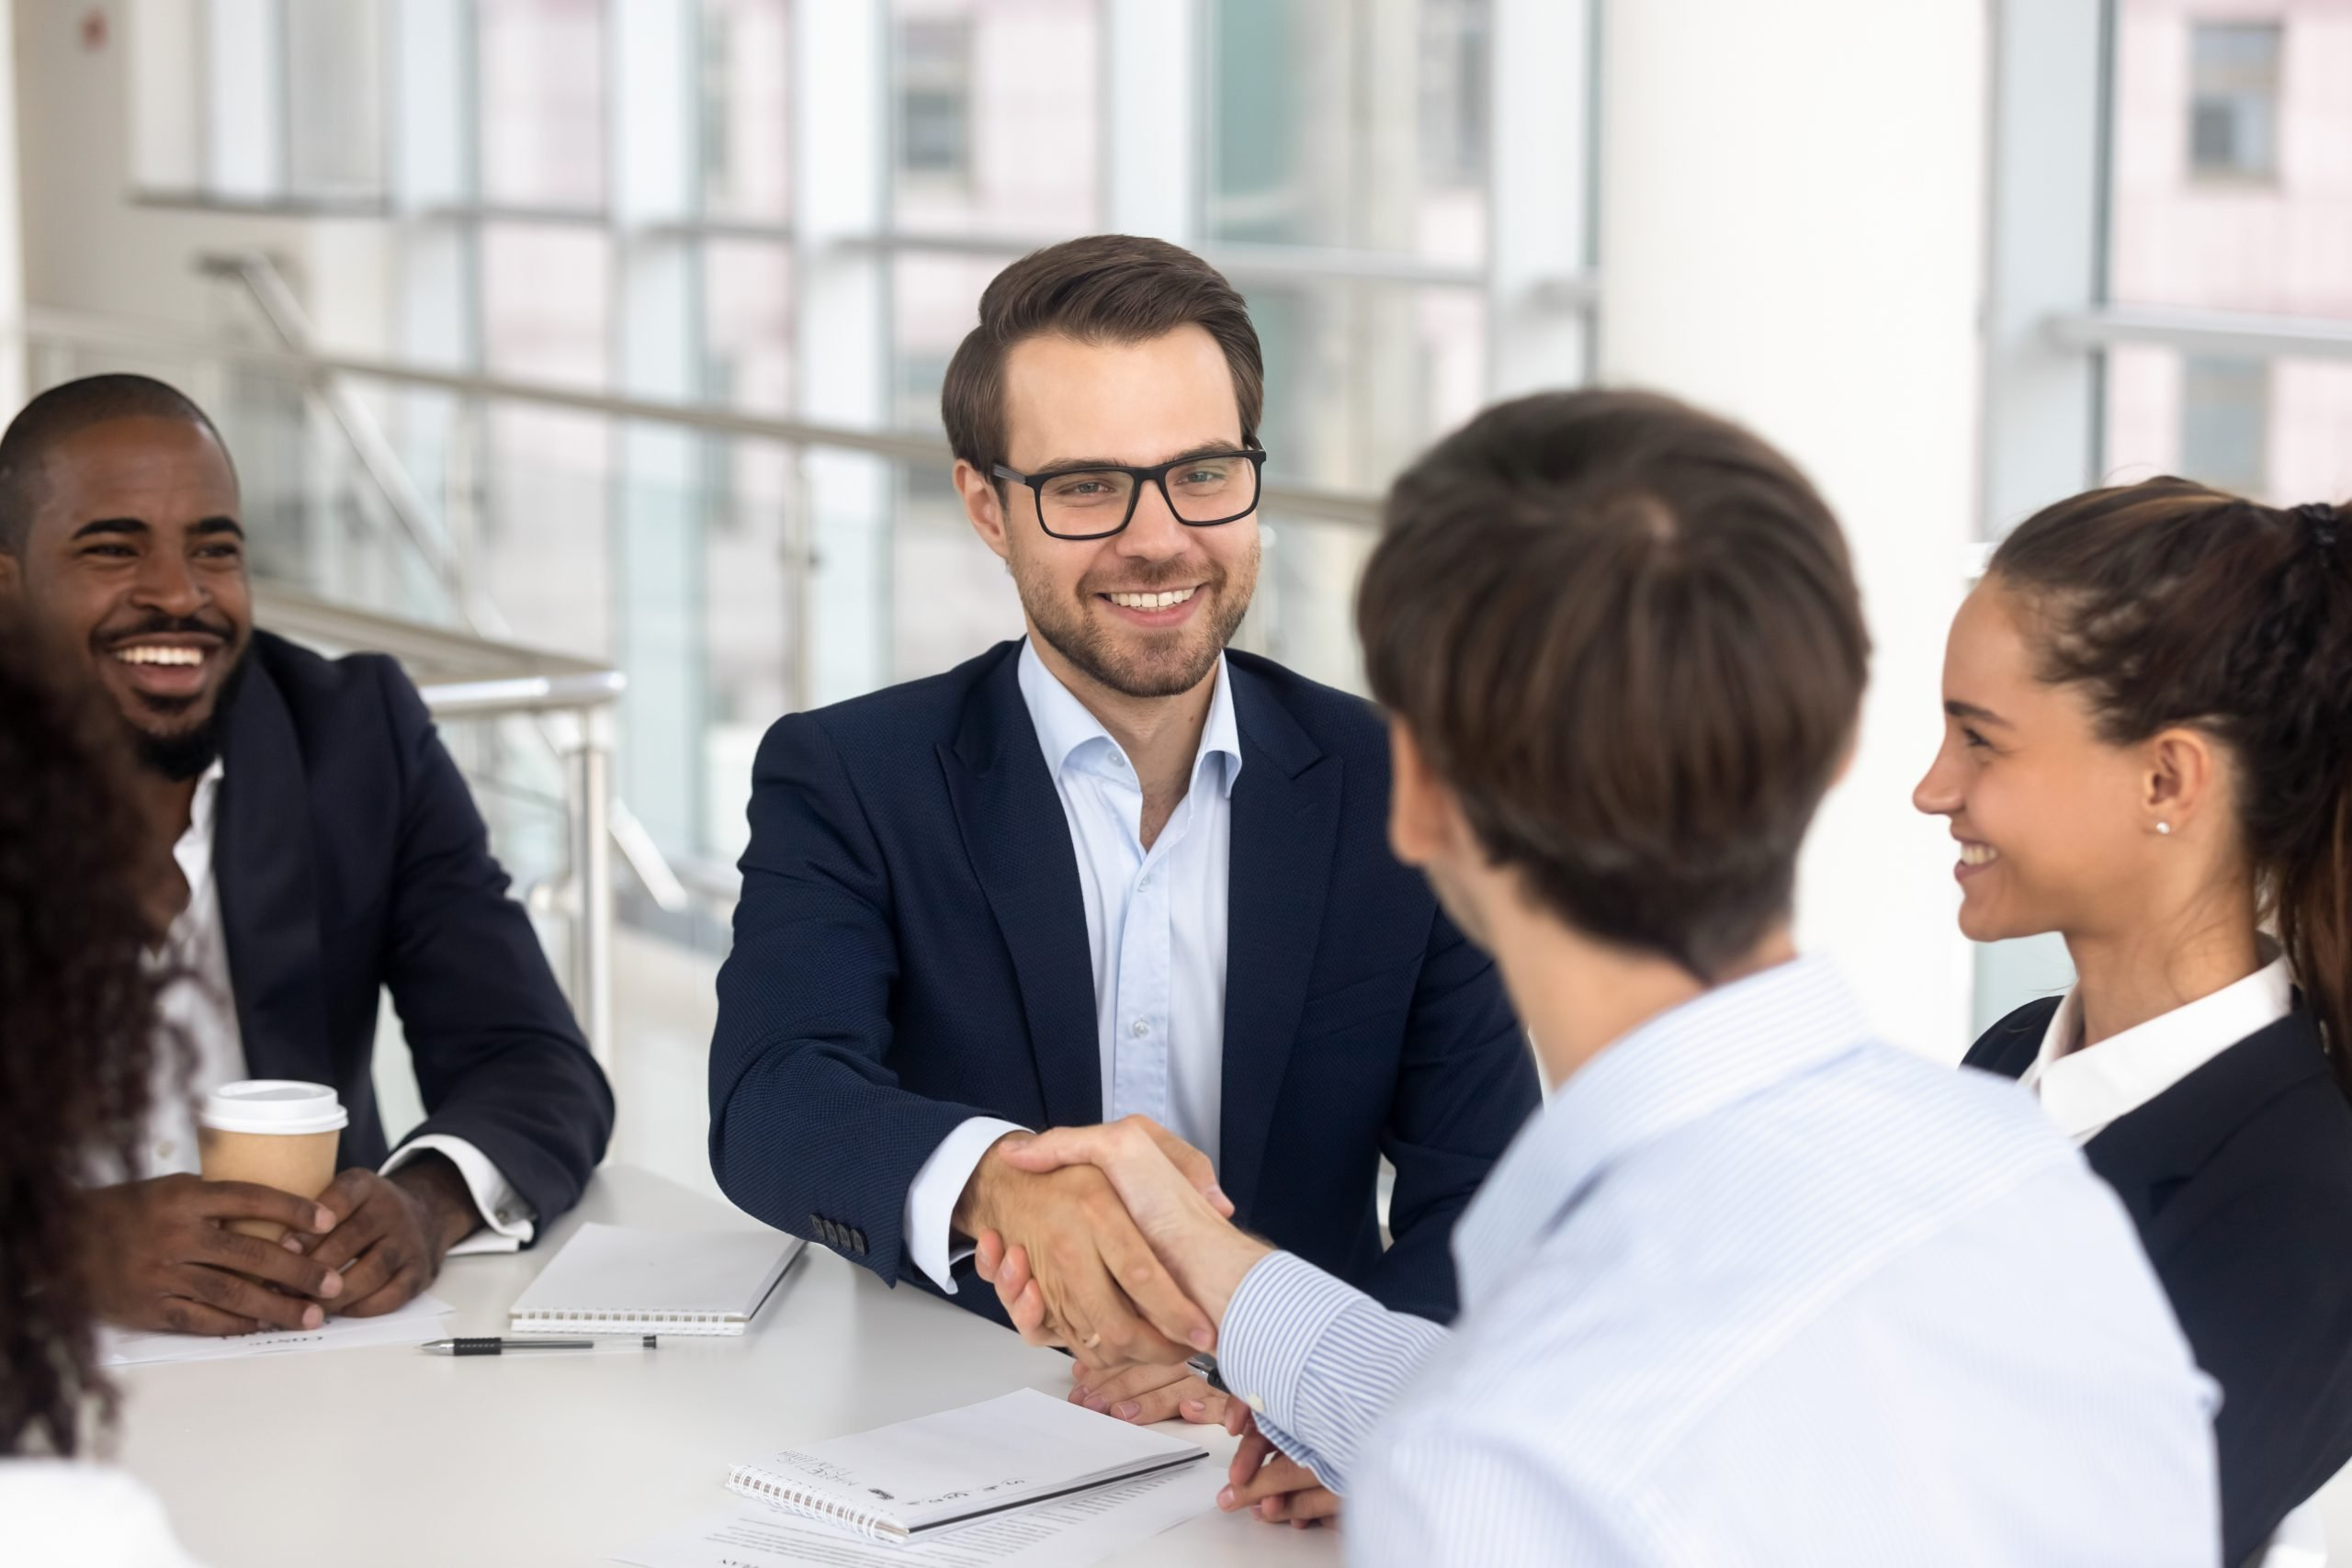 Happy smiling businessman handshake with business partner for successful agreement. African amercan and white men conclude profit deal with investor relationship good first impression, deal, respect